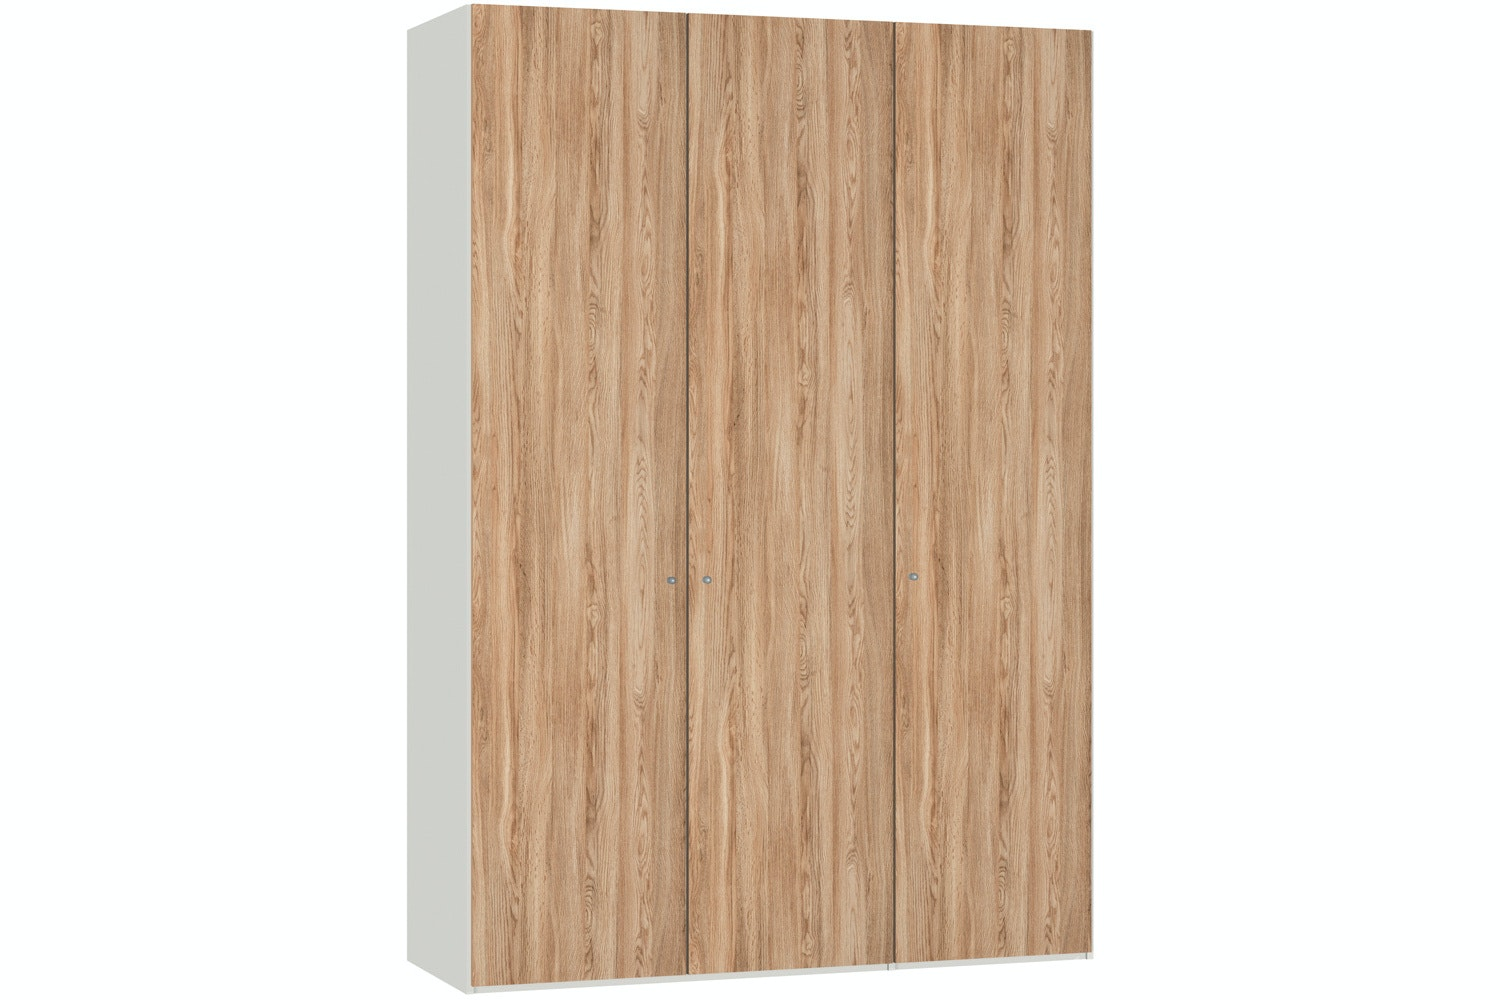 Christine Hinged 3 Door Wardrobe 152Cm | Oak